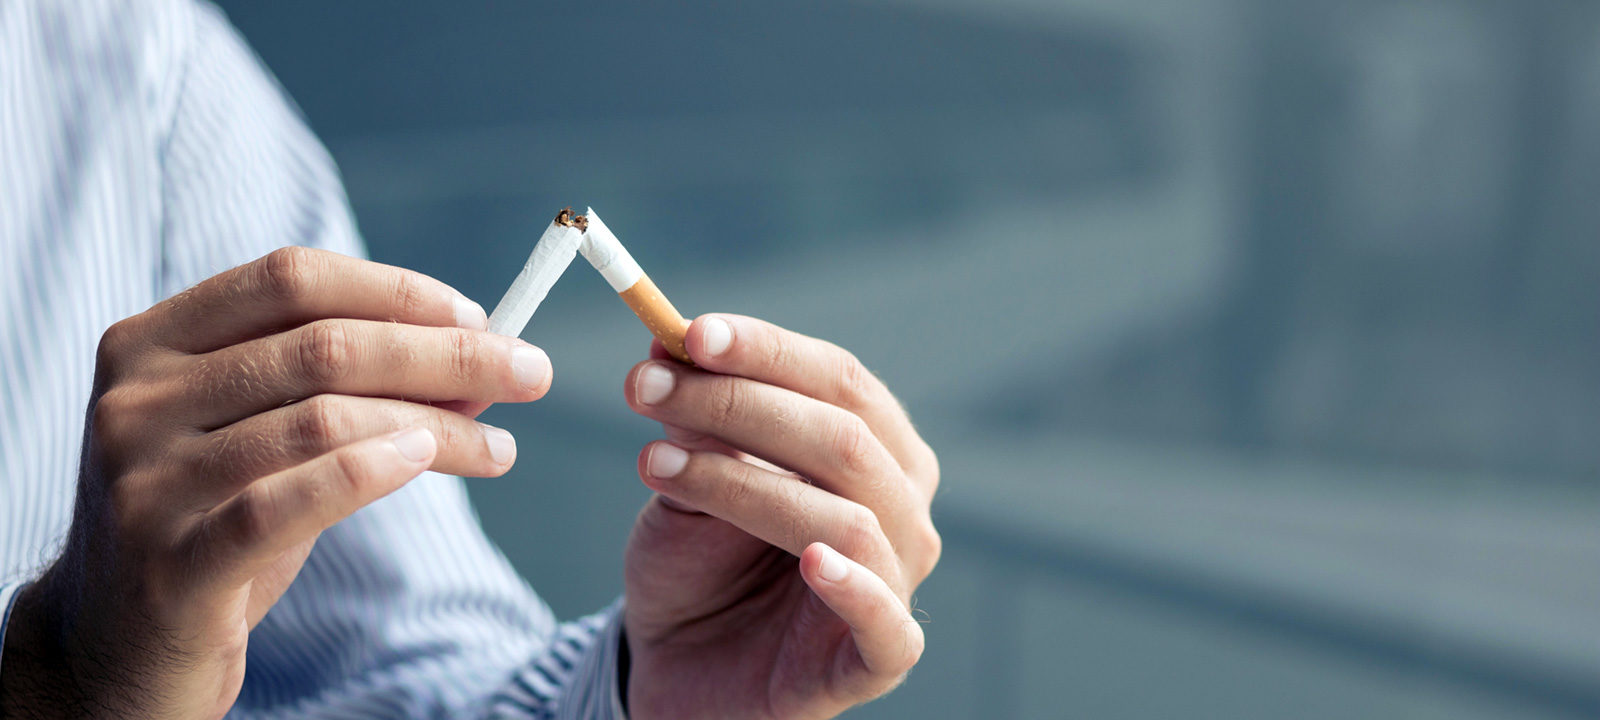 Approaching tobacco dependency as a long-term condition